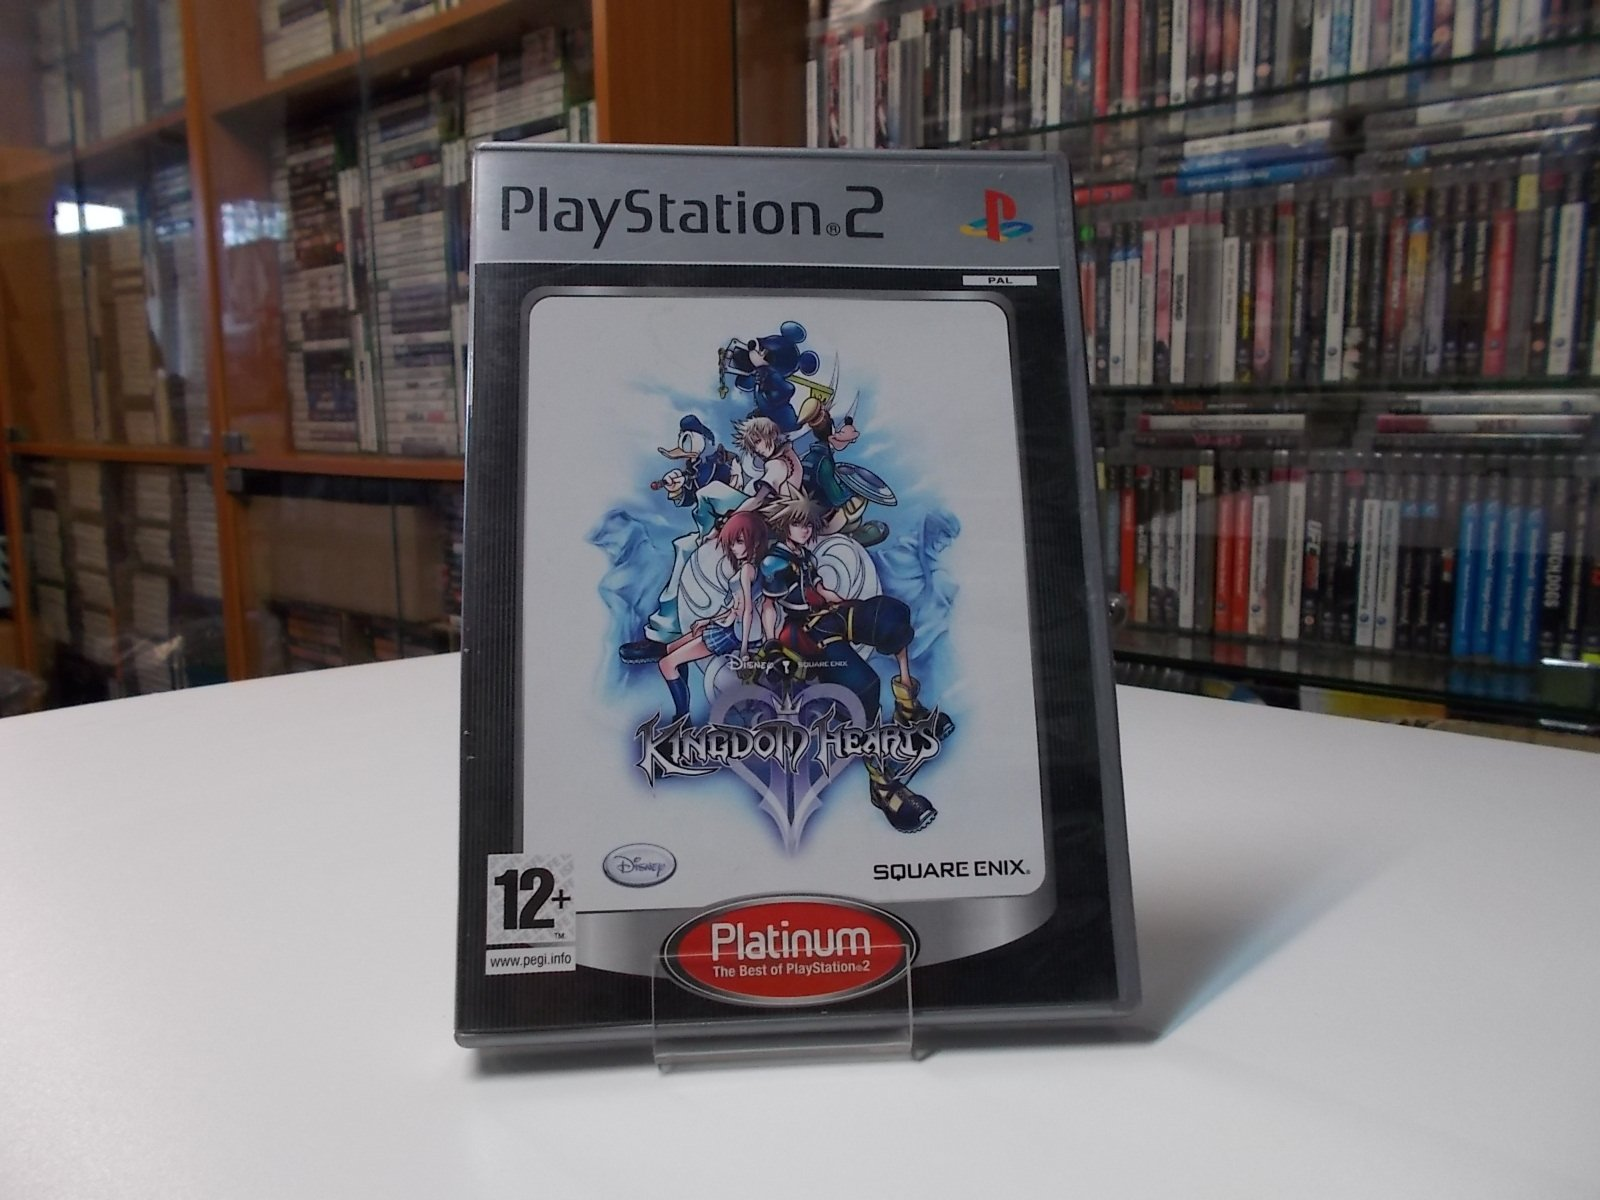 Kingdom Hearts II - GRA Ps2 - Opole 0517